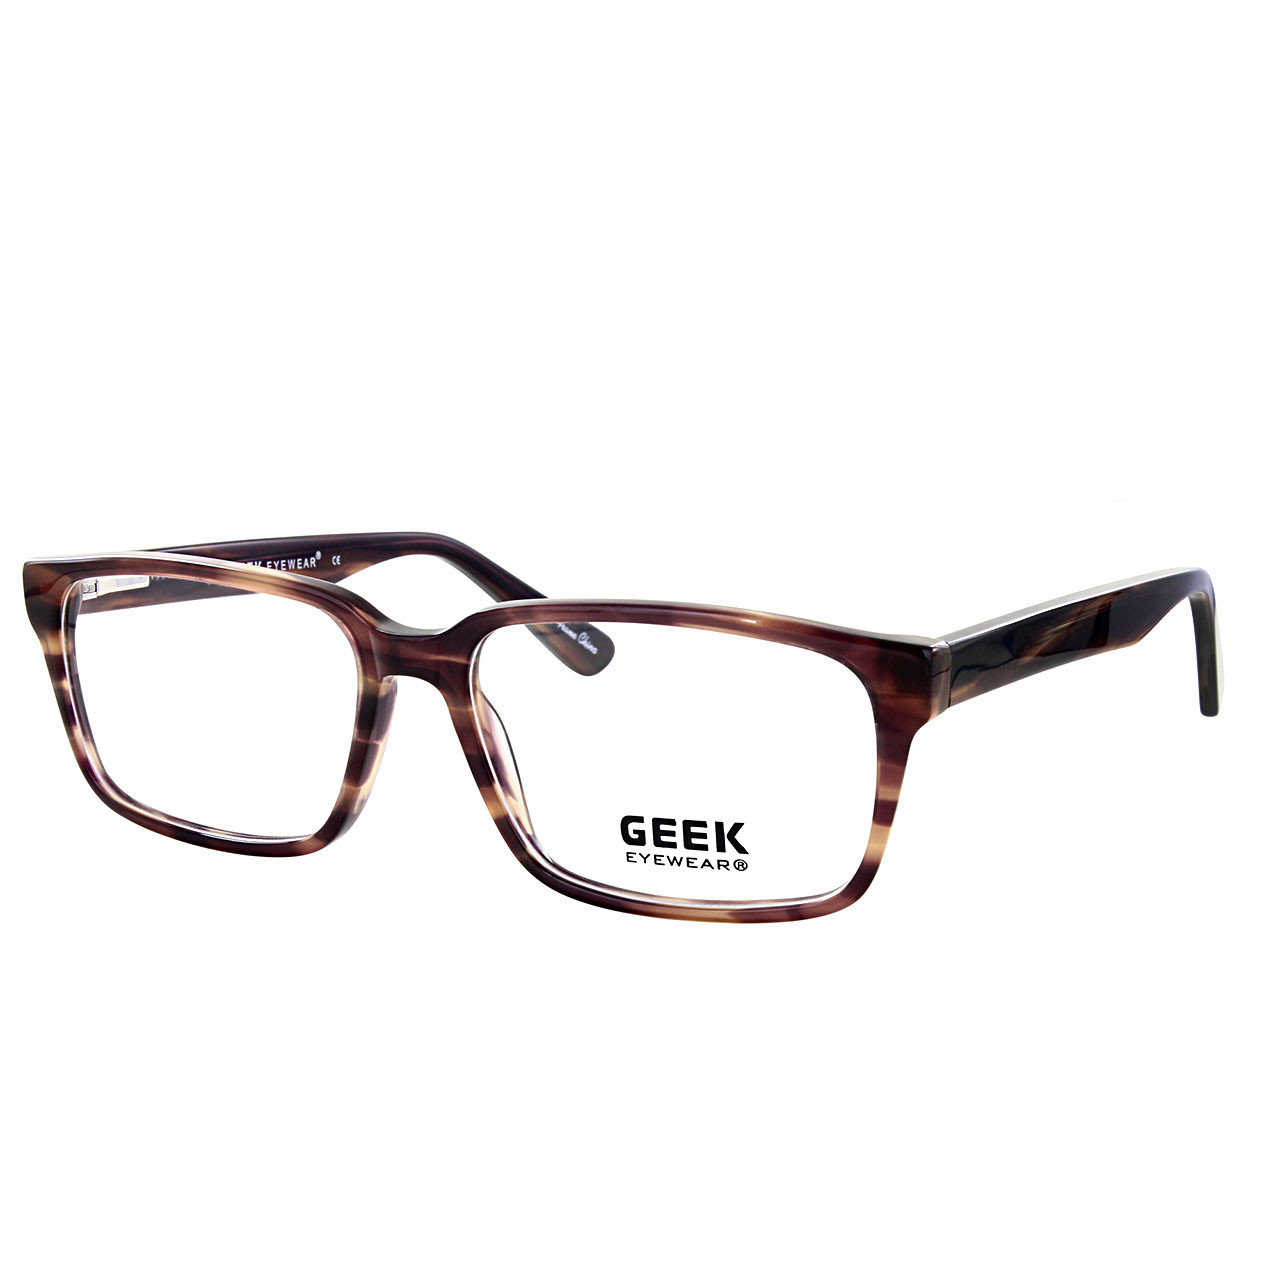 GEEK Eyewear GEEK CEO